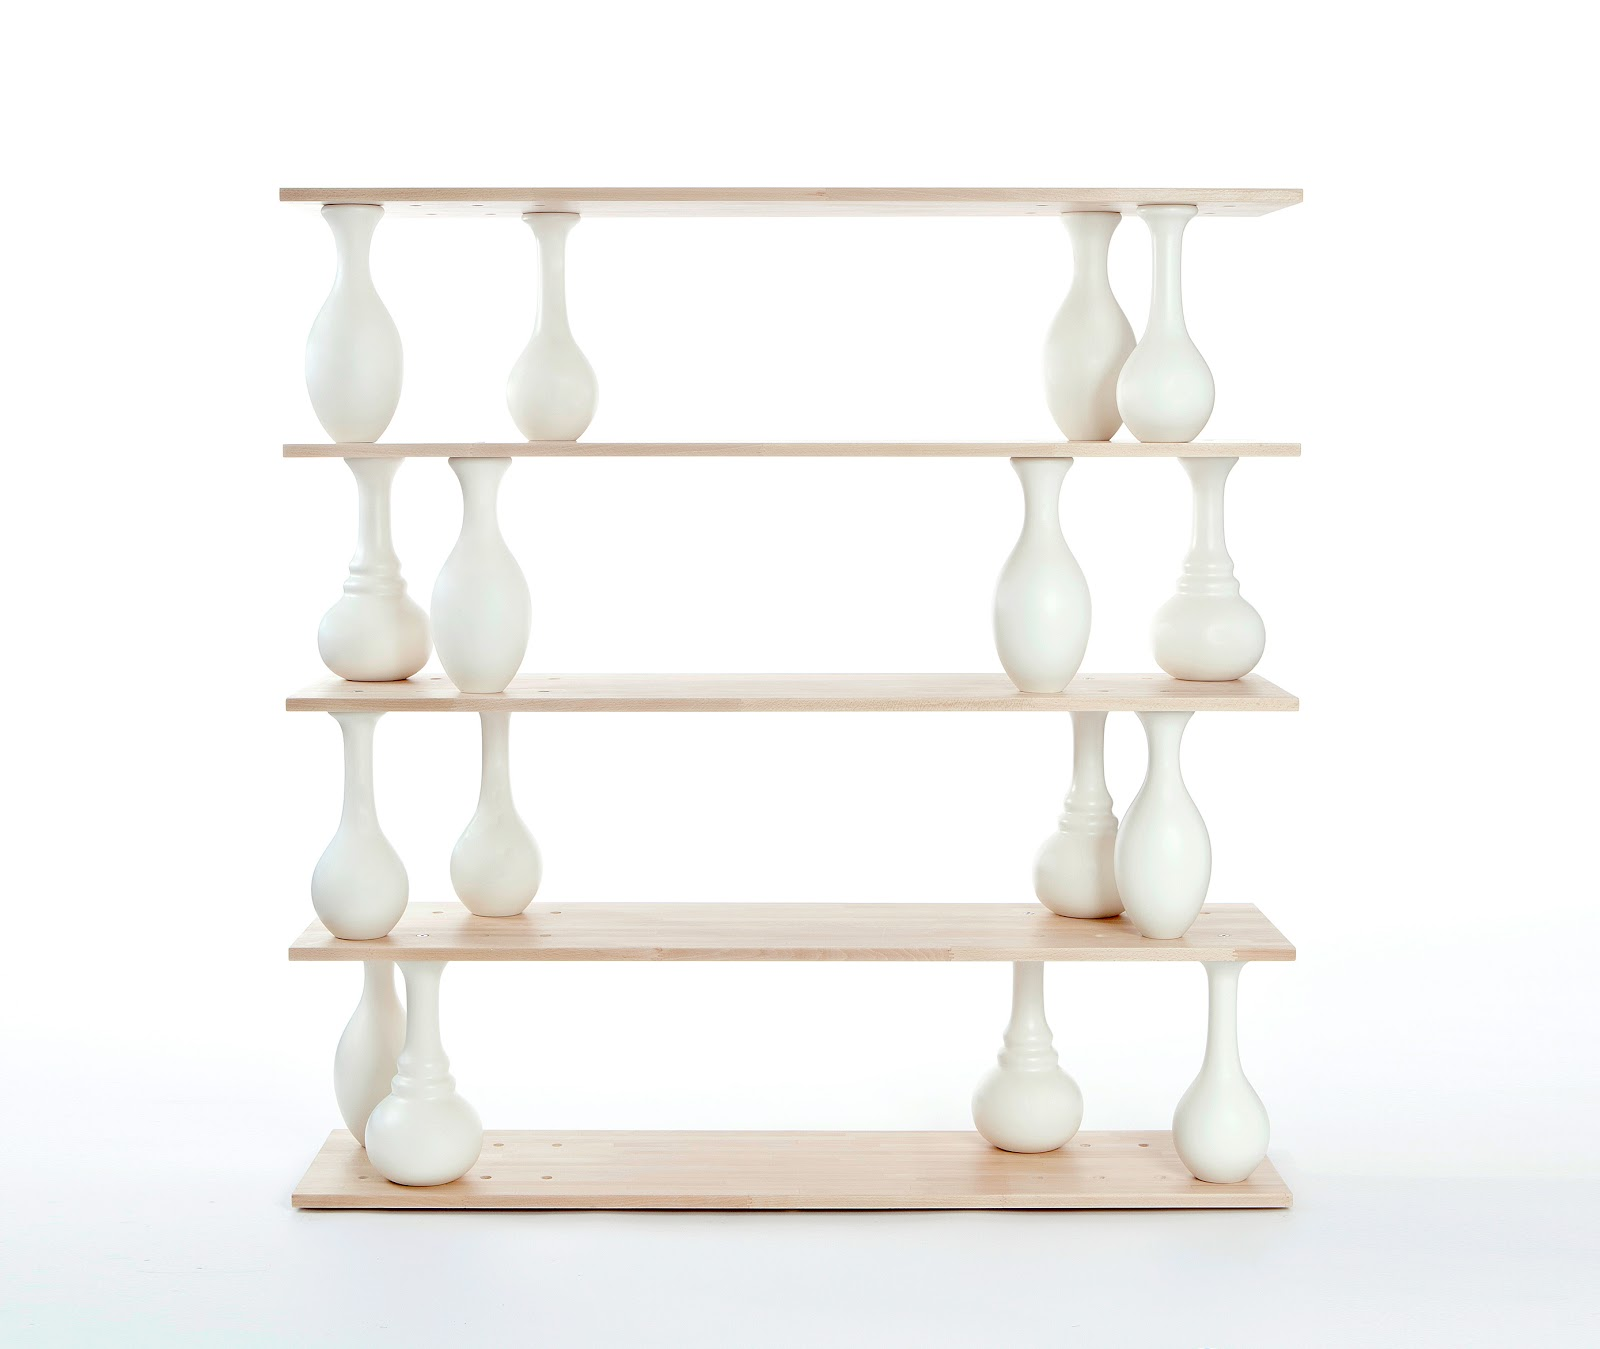 Vase Shelves Is A Modular Shelving System That Is Constructed Of Wood  Planes And Vase Shaped Lathed Wood Elements, That Serve As Connectors  Between One ...